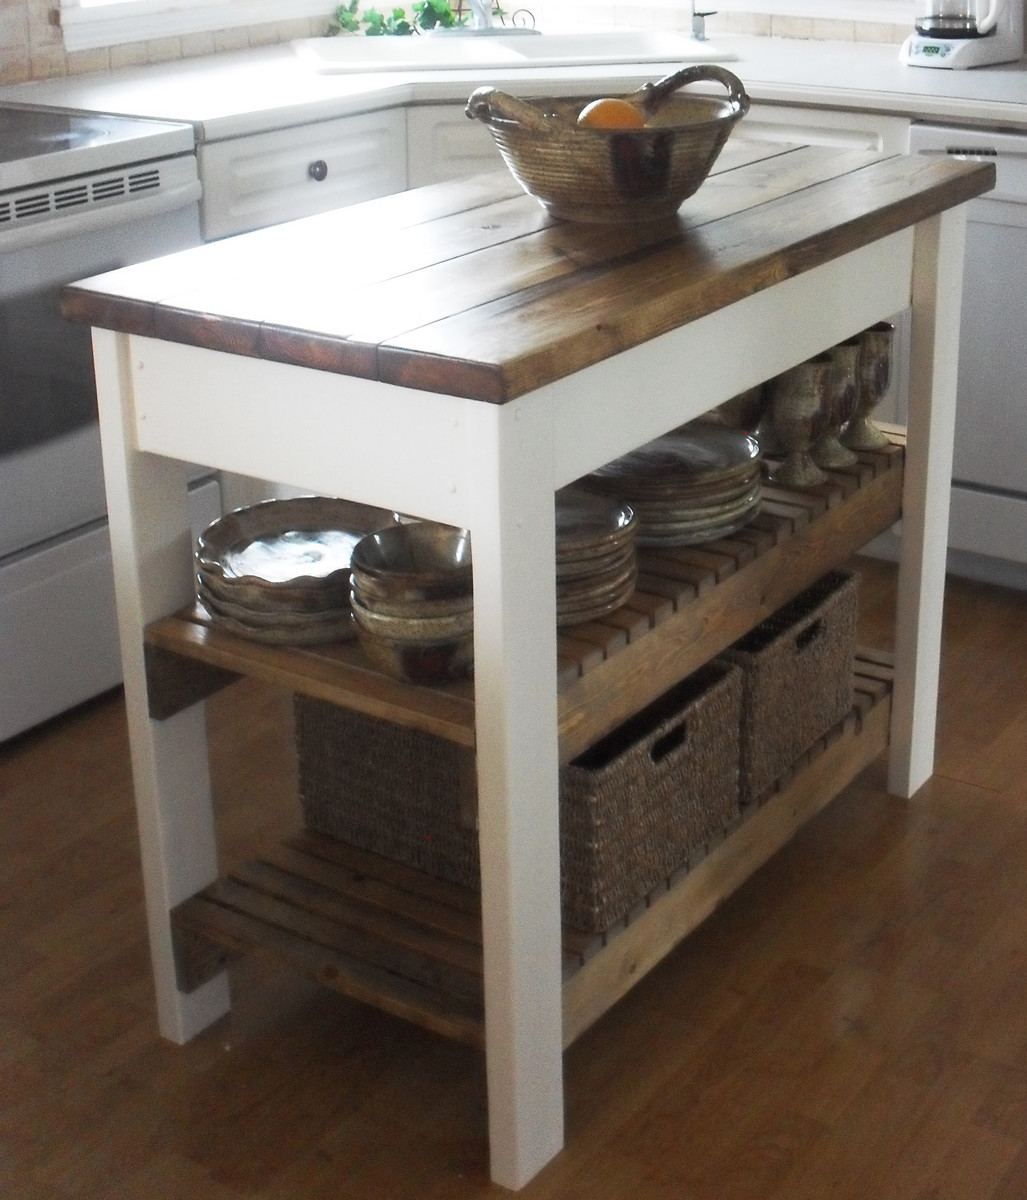 Ana White | Kitchen Island - DIY Projects on kitchen camera ideas, kitchen cabinet displays, kitchen art ideas, kitchen color ideas, kitchen plaque ideas, kitchen craft ideas, kitchen stand ideas, kitchen clock ideas, kitchen light ideas, kitchen coffee station ideas, kitchen setting ideas, kitchen doorway ideas, professional kitchen ideas, kitchen post ideas, kitchen tv ideas, kitchen wall displays, kitchen furniture ideas, kitchen cutouts ideas, kitchen accessory ideas, kitchen gift ideas,